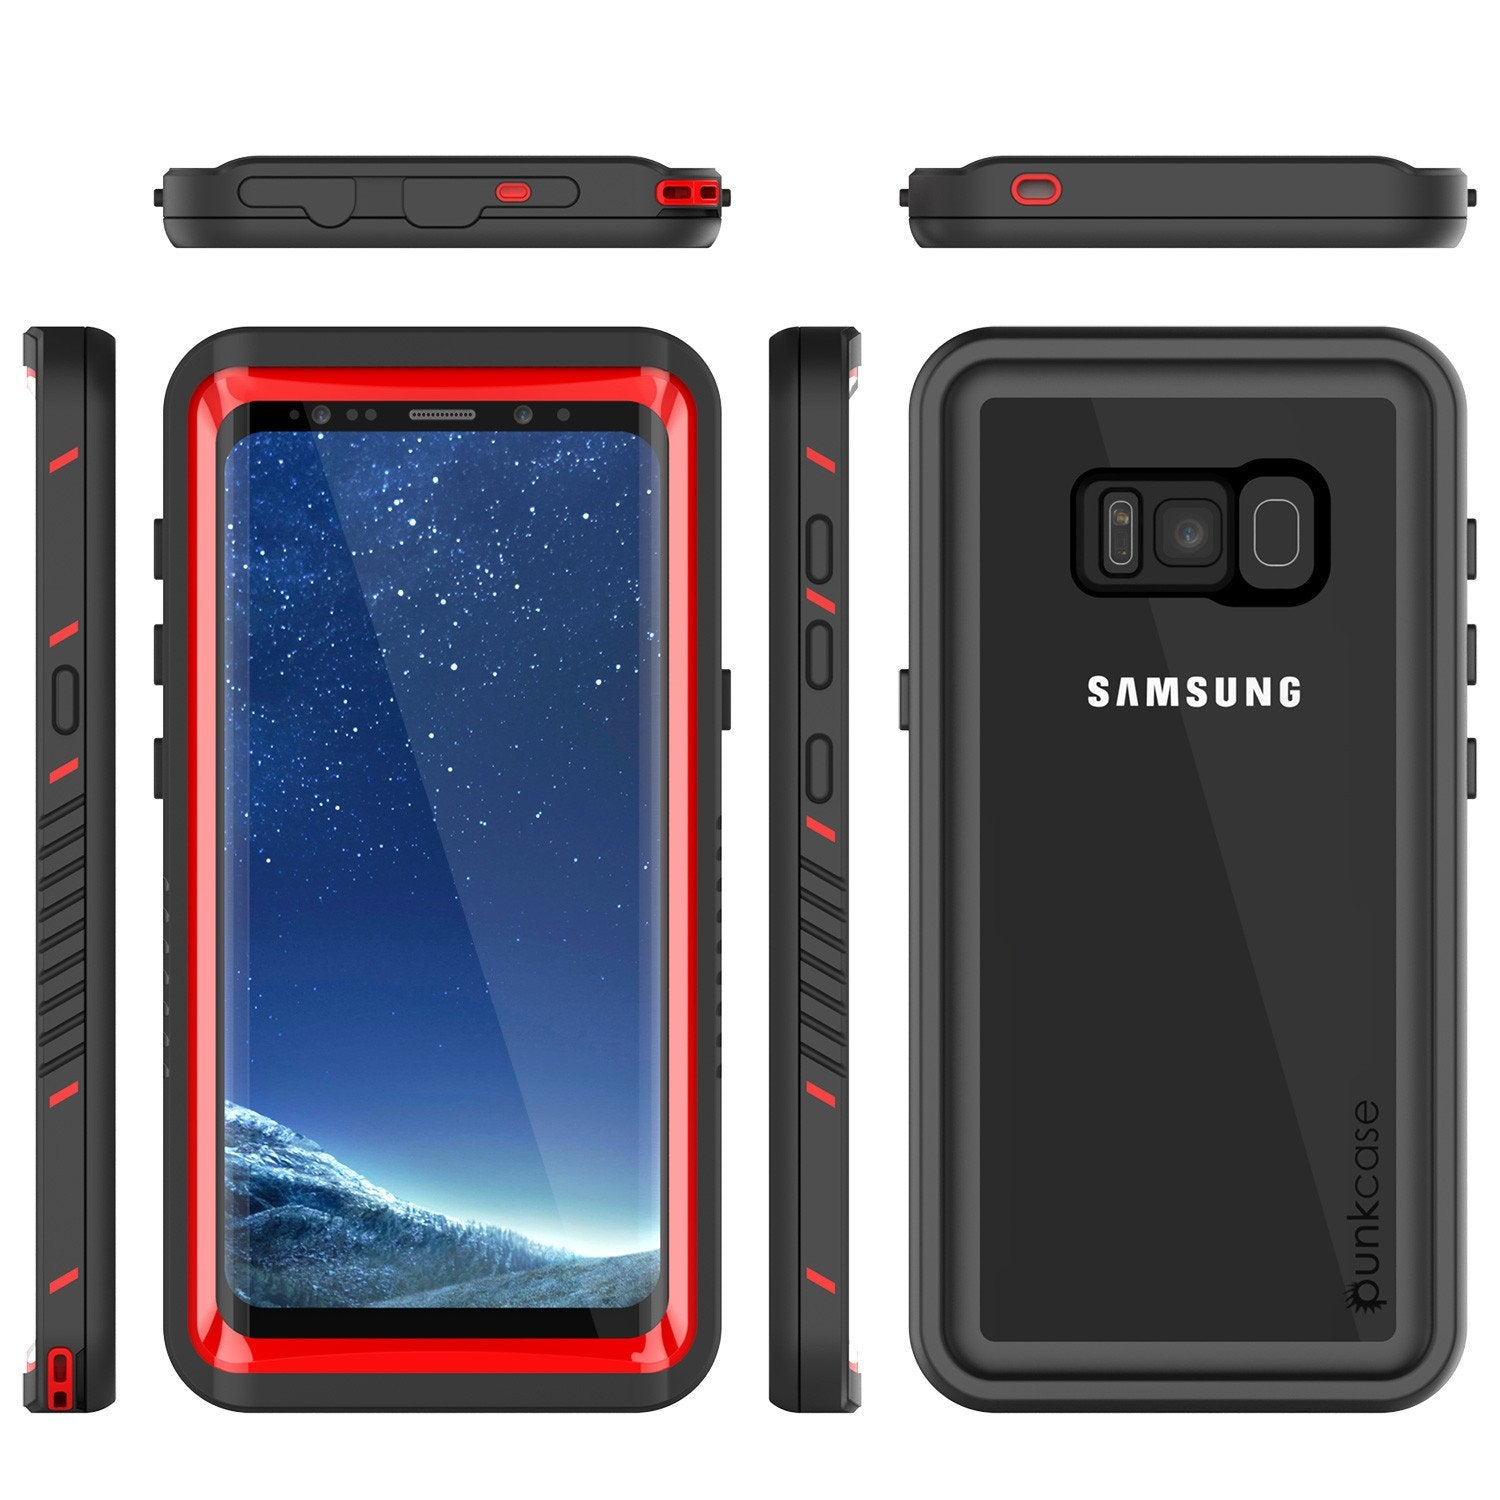 Galaxy S8 PLUS Waterproof Case, Punkcase [Extreme Series] [Slim Fit] [IP68 Certified] [Shockproof] [Snowproof] [Dirproof] Armor Cover W/ Built In Screen Protector for Samsung Galaxy S8+ [Red]